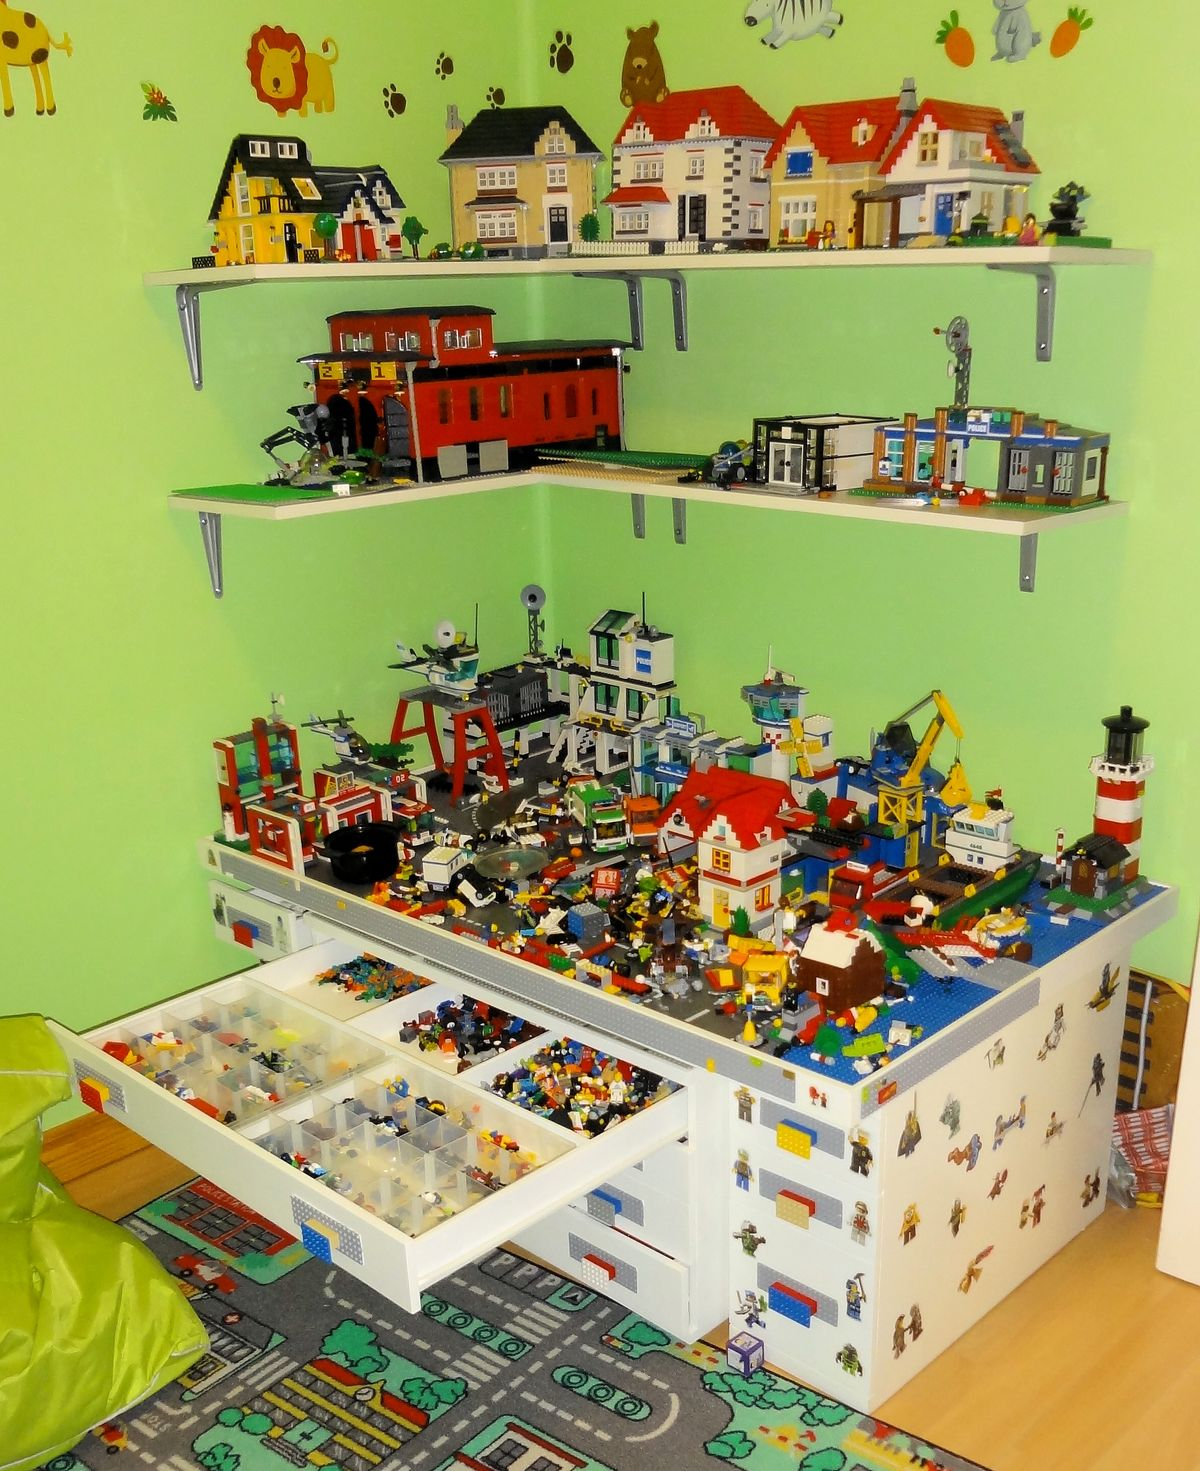 1000 images about lego table on pinterest lego table. Black Bedroom Furniture Sets. Home Design Ideas